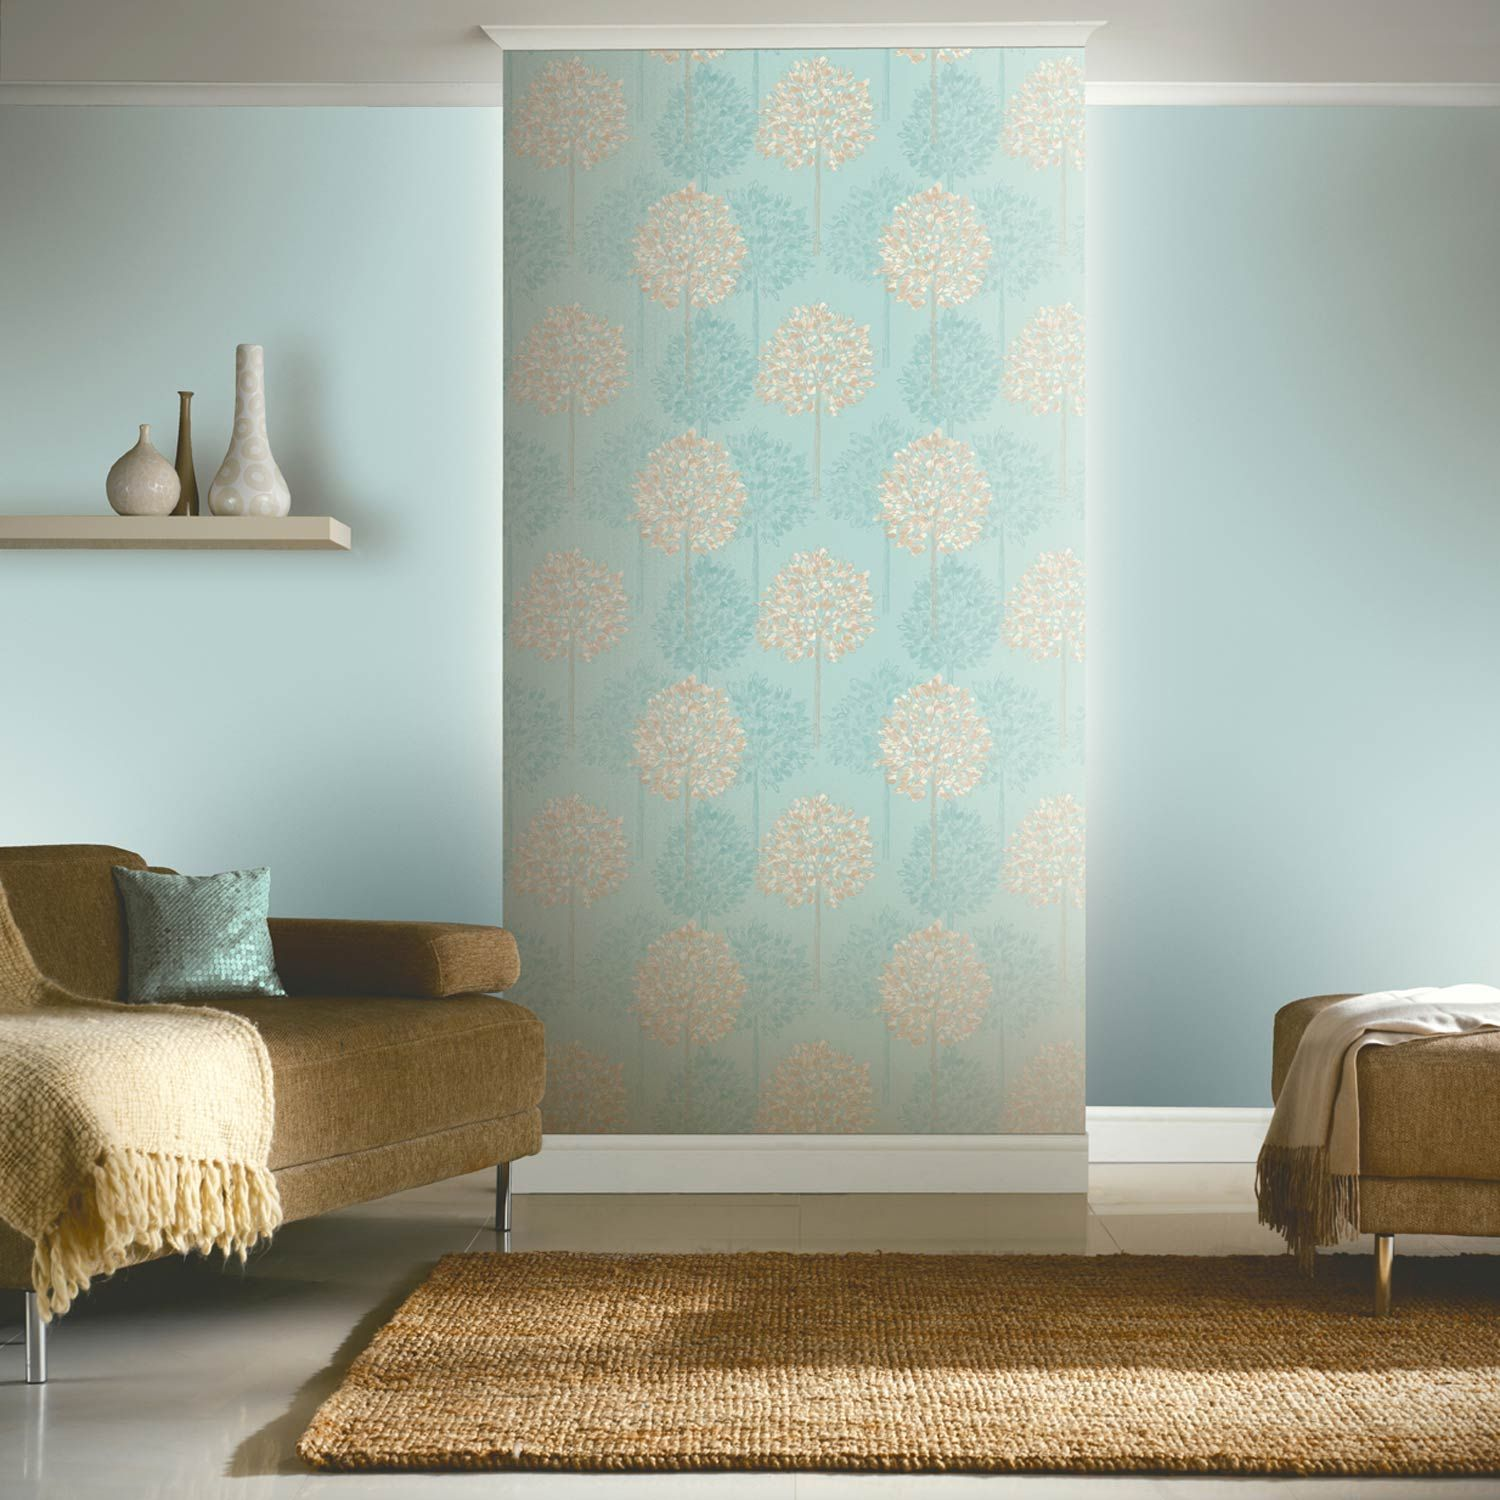 Boulevard Teal Wallpaper by Arthouse at The Range Blue